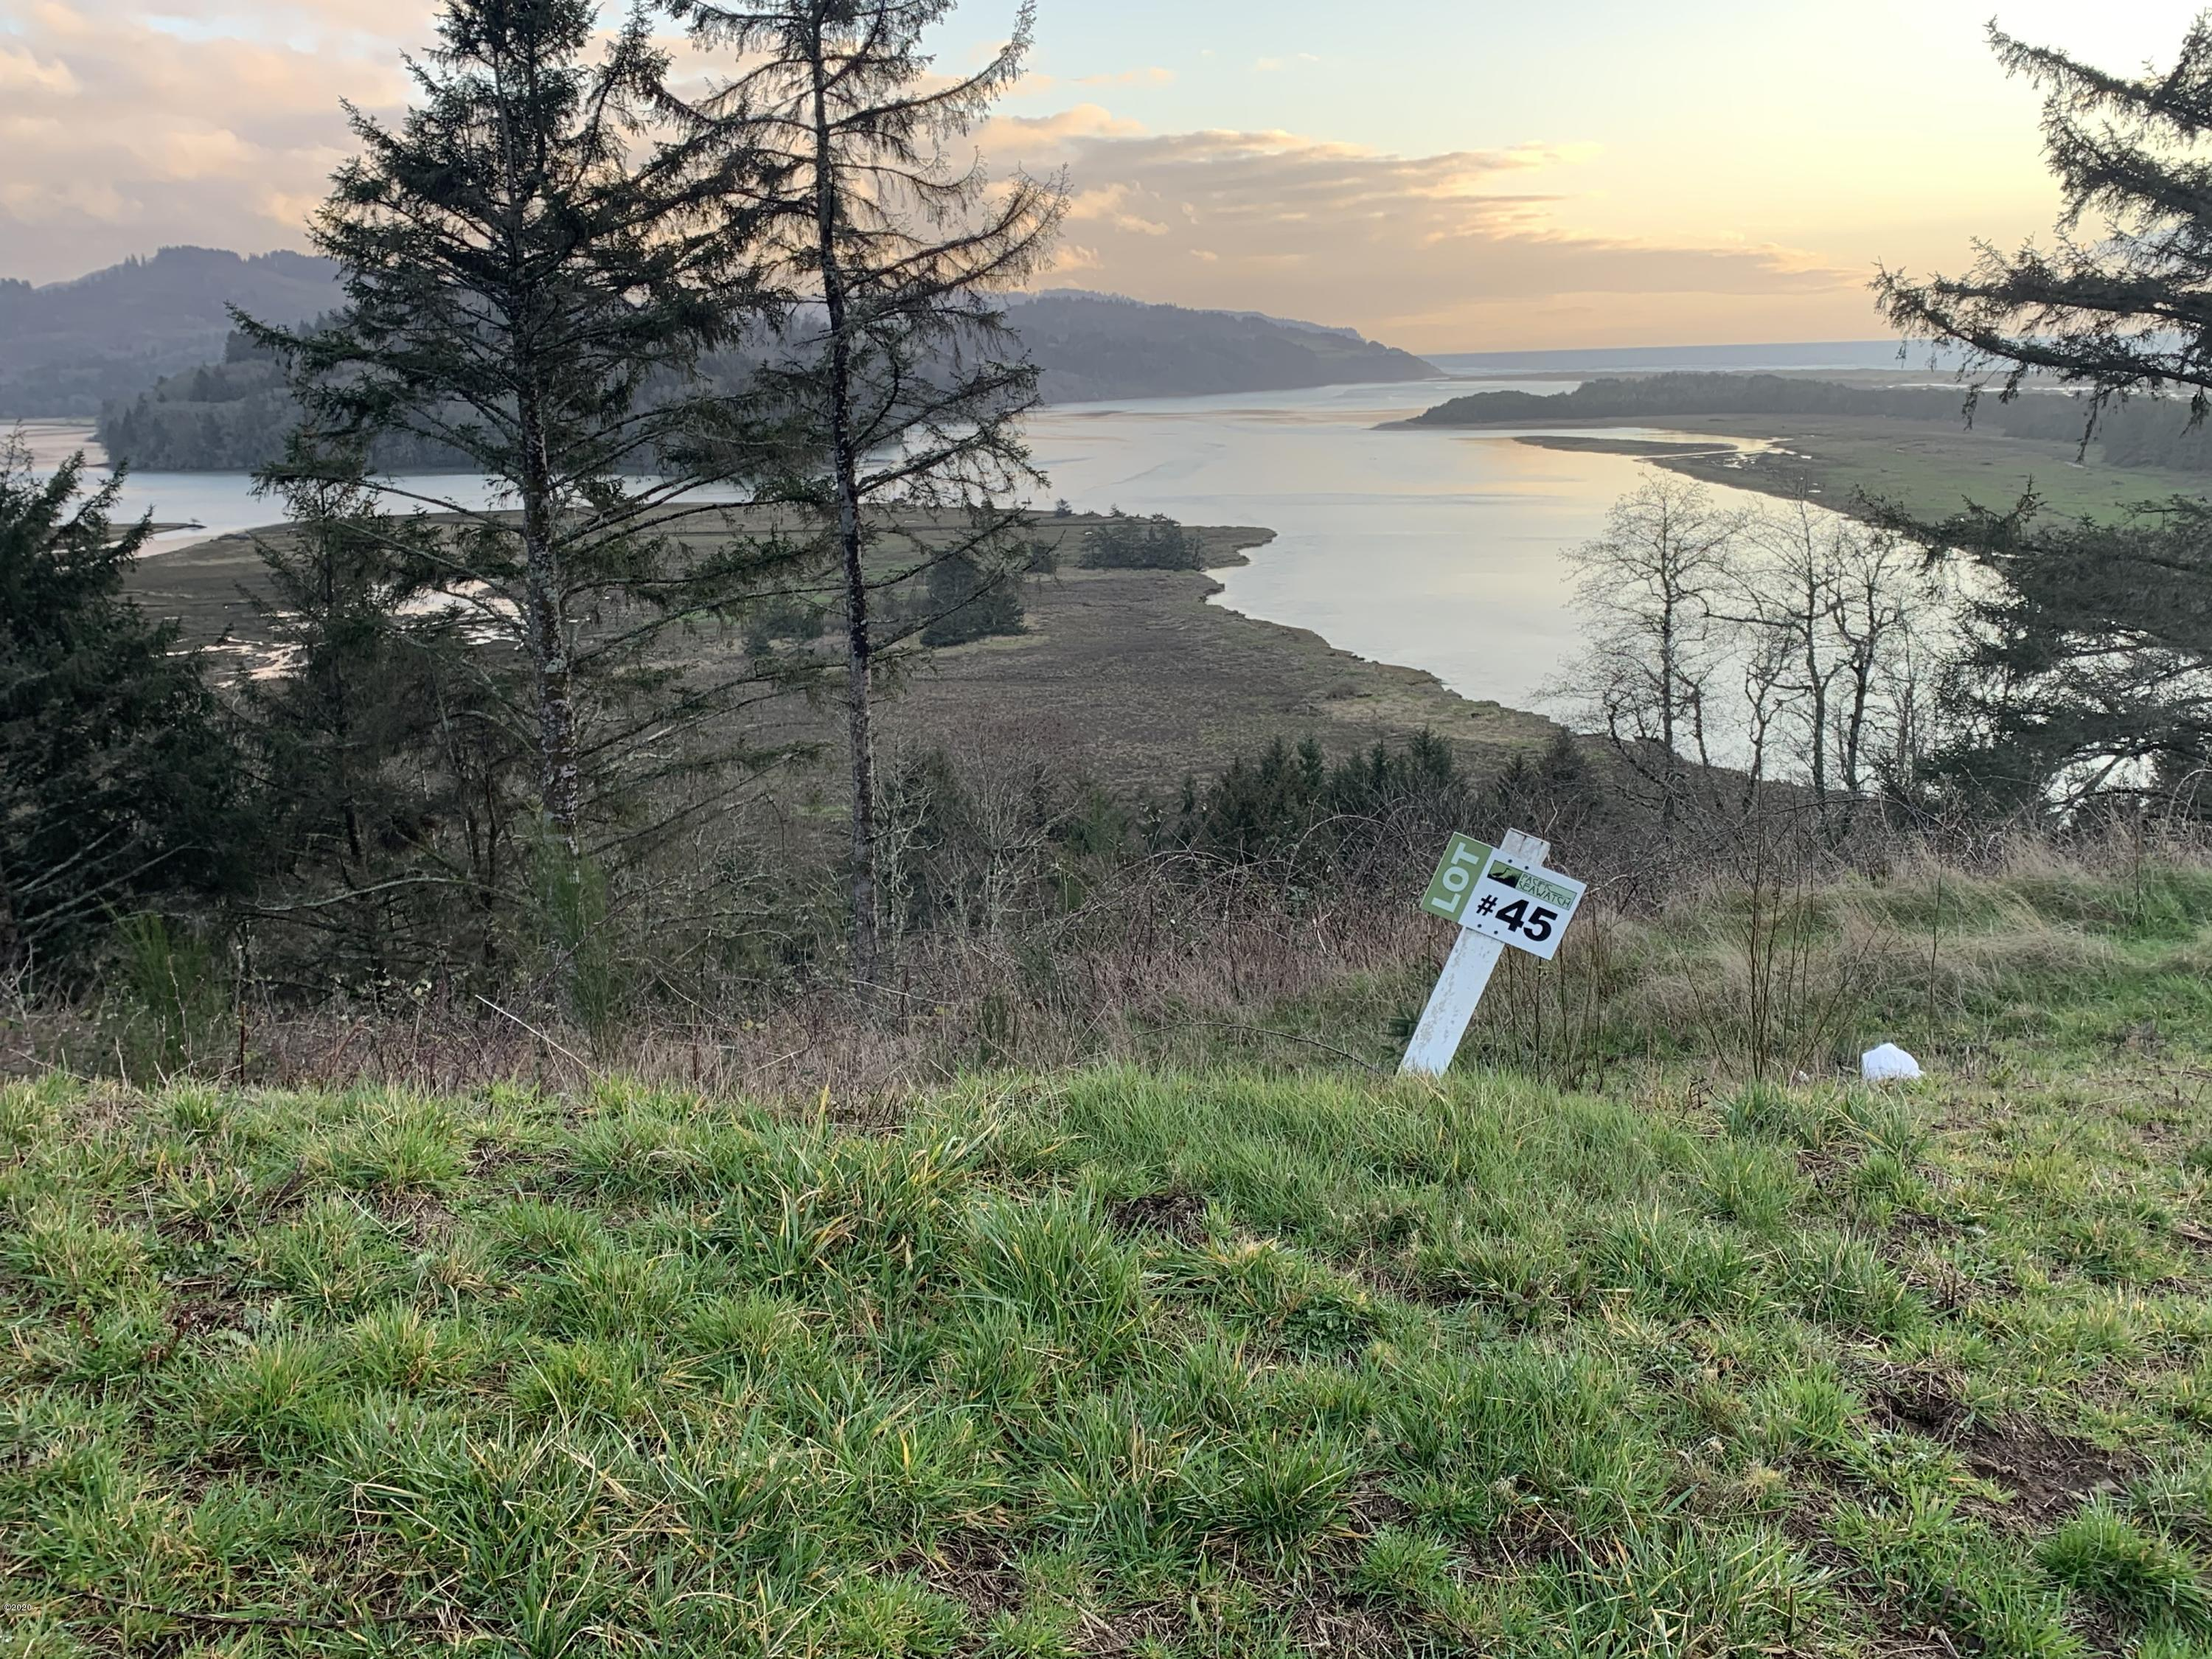 LOT 43 Kingfisher Loop, Pacific City, OR 97135 - View from Lot 43